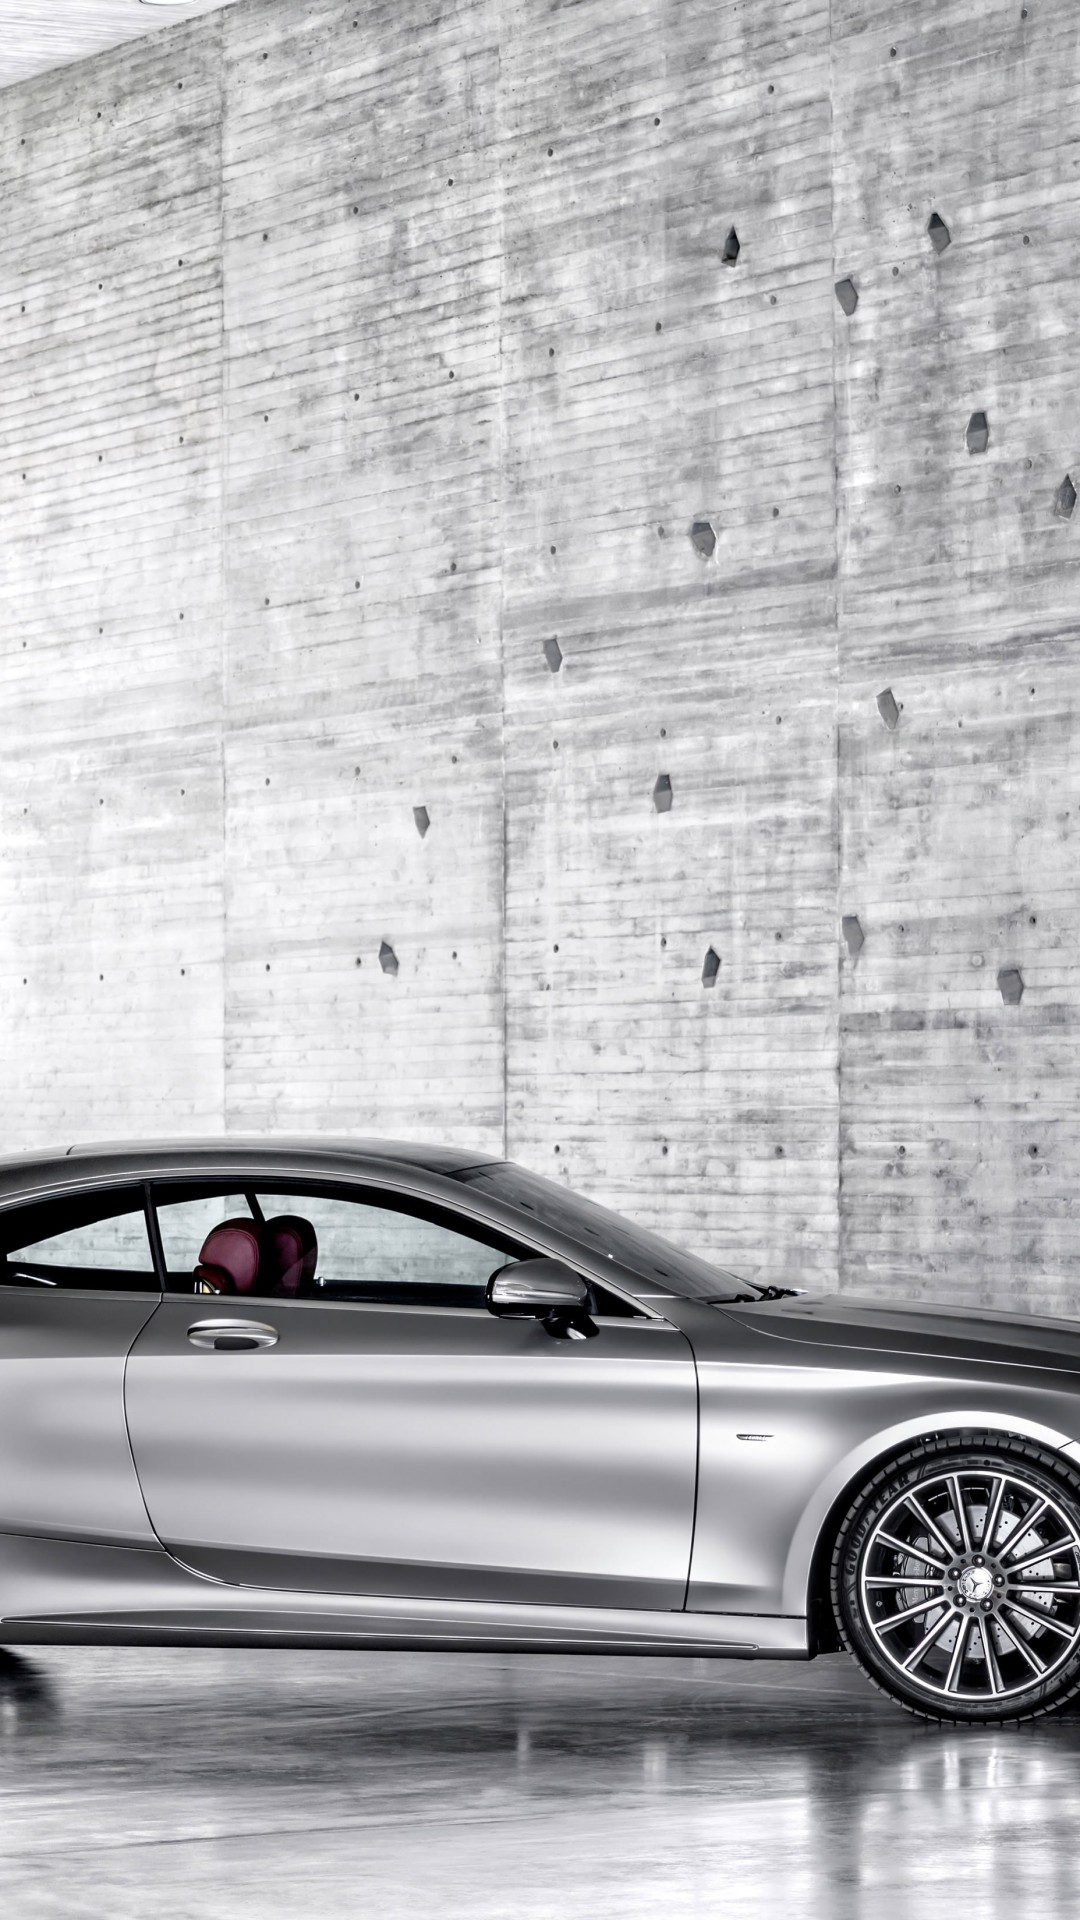 2015 Mercedes-Benz S-Class Coupe Wallpaper for HTC One